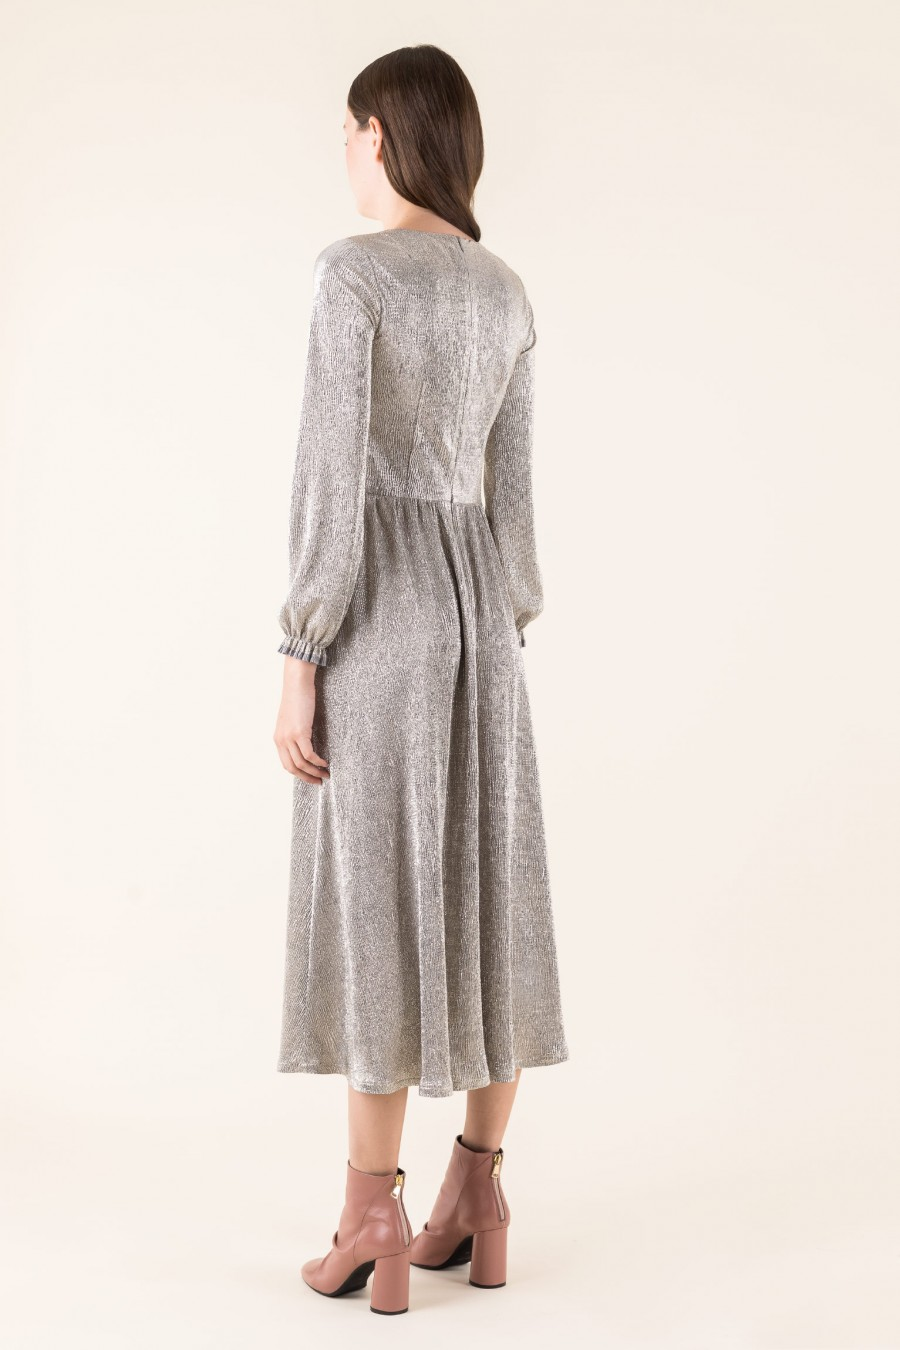 Silver dress with long sleeves